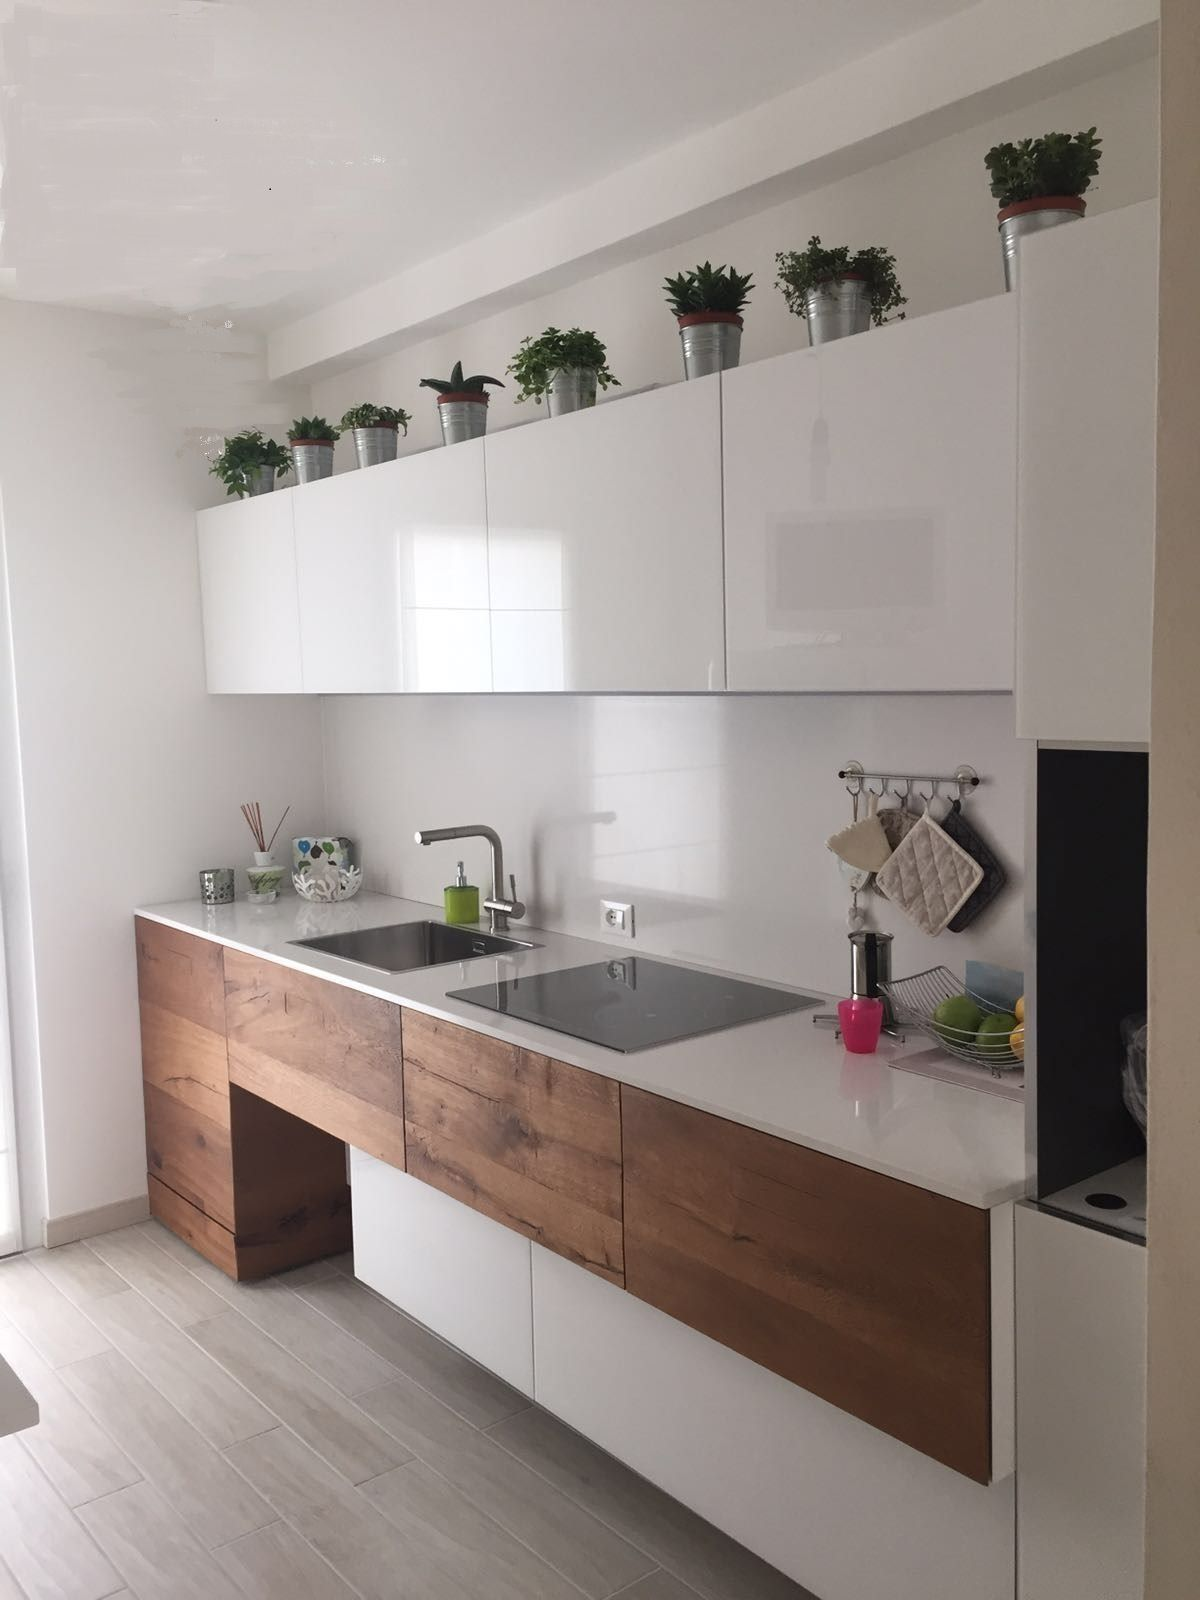 100 idee cucine moderne in legno bianche nere colorate for Cucine pinterest